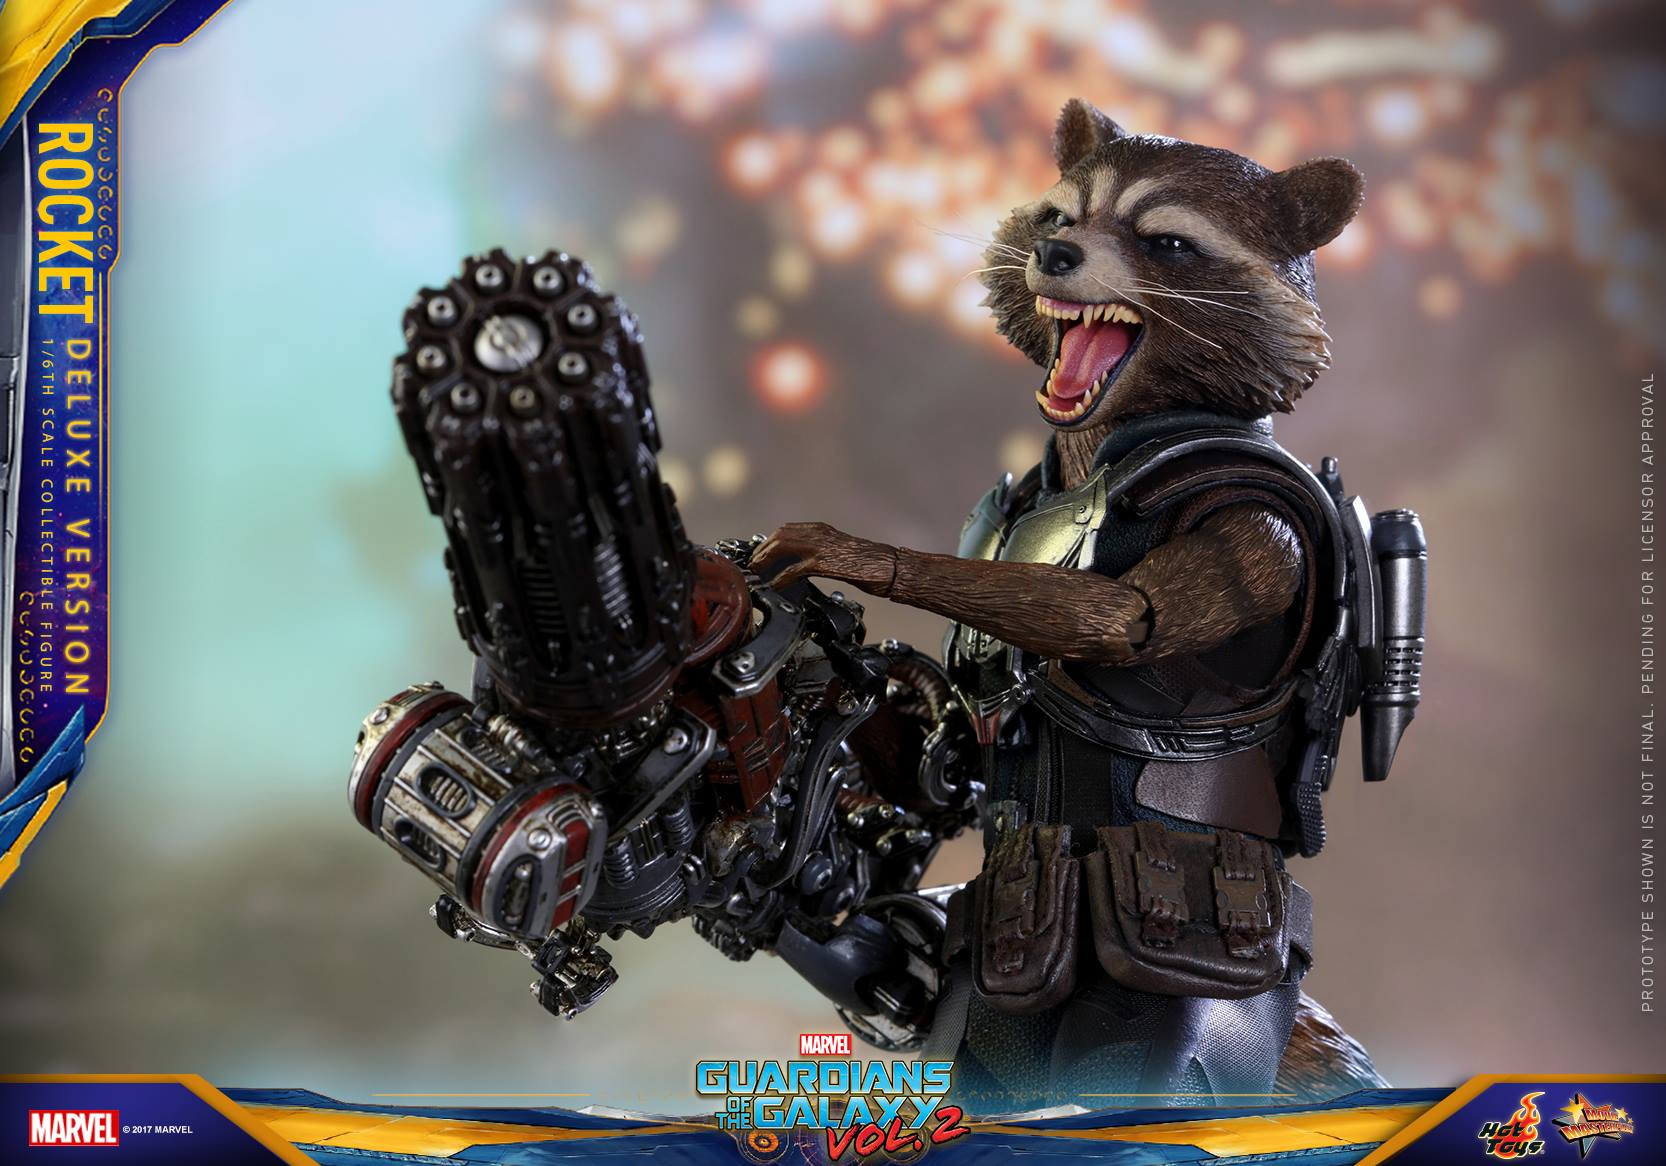 GOTG Vol. 2 - 1/6th scale Rocket Collectible Figure (Deluxe Ver.).